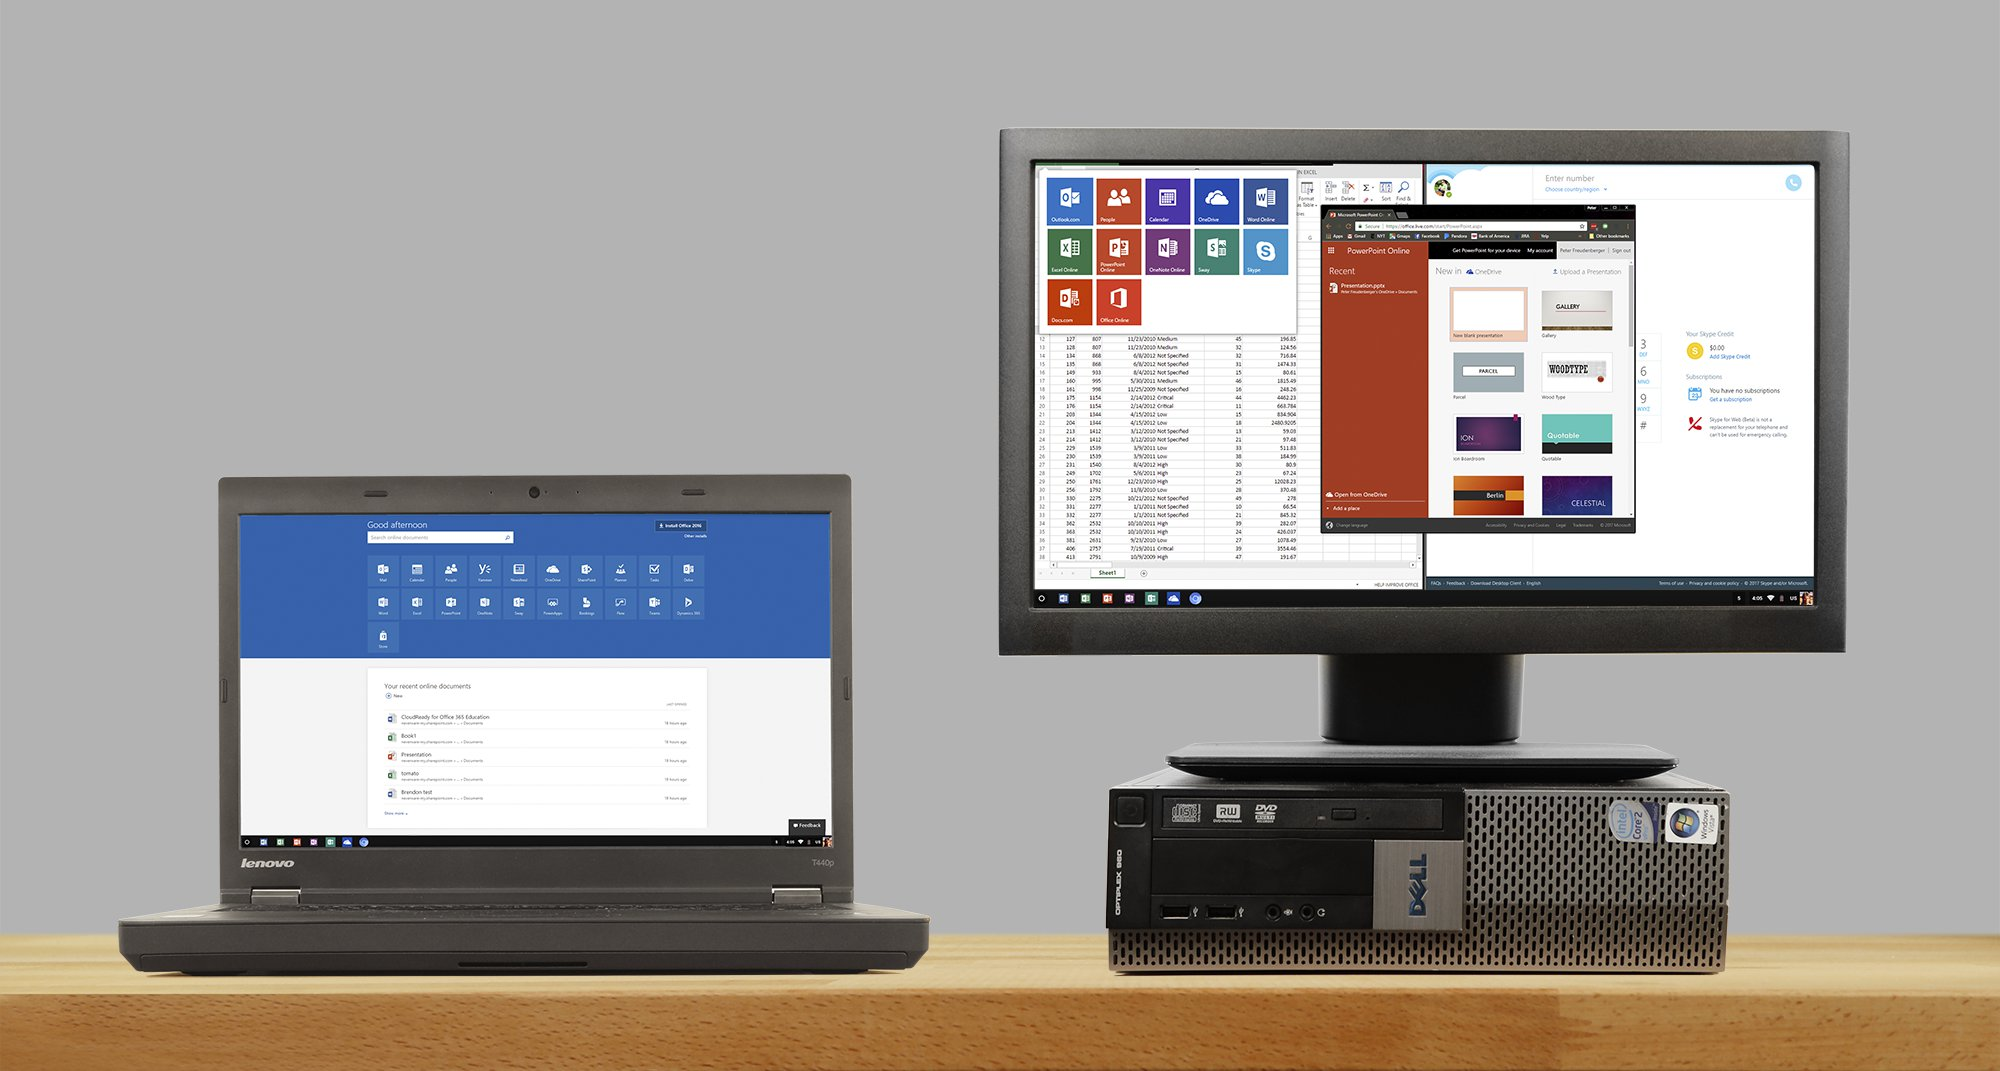 Neverware ditches Google services for Office 365 on its